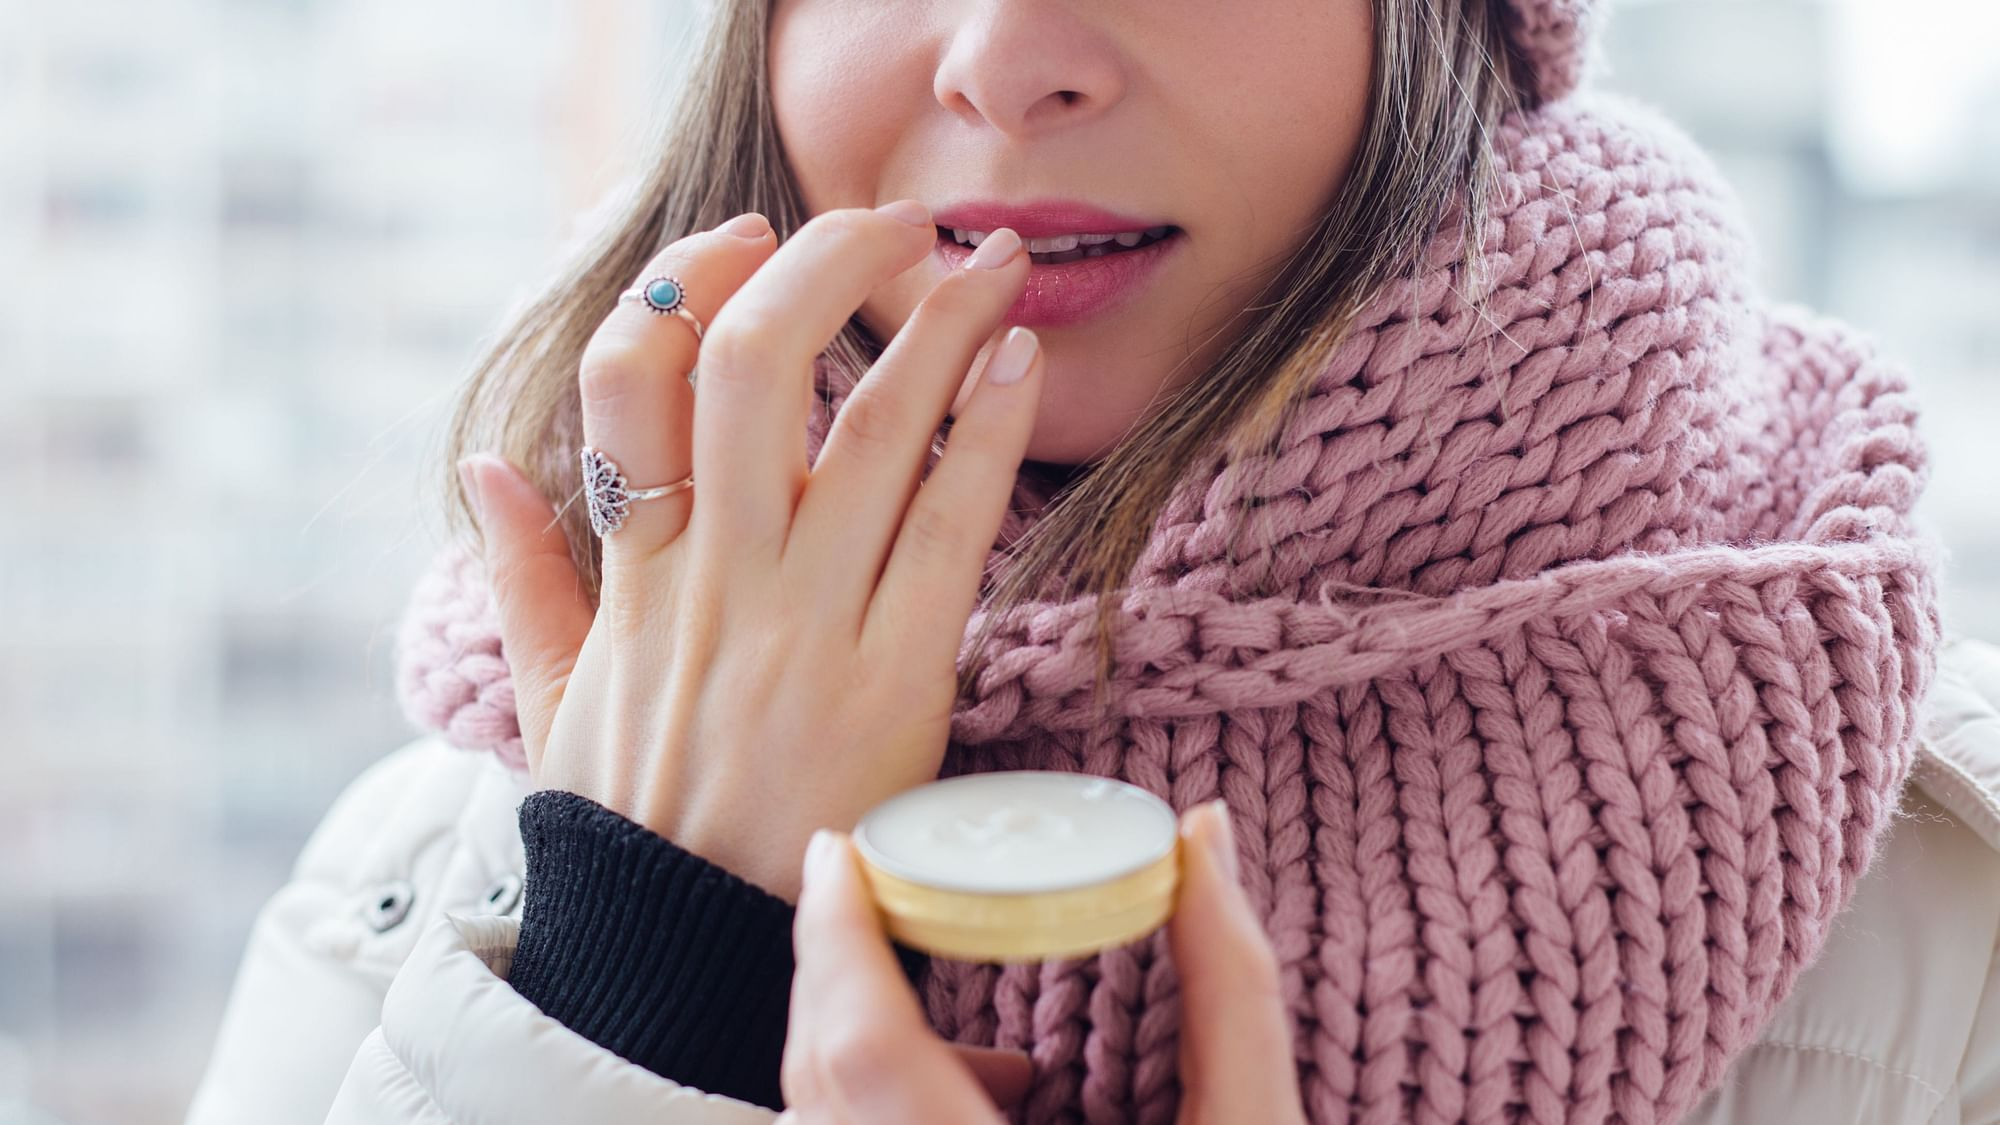 FIT Quiz: Chapped Lips & Cold? Know How to Fight Them This Winter